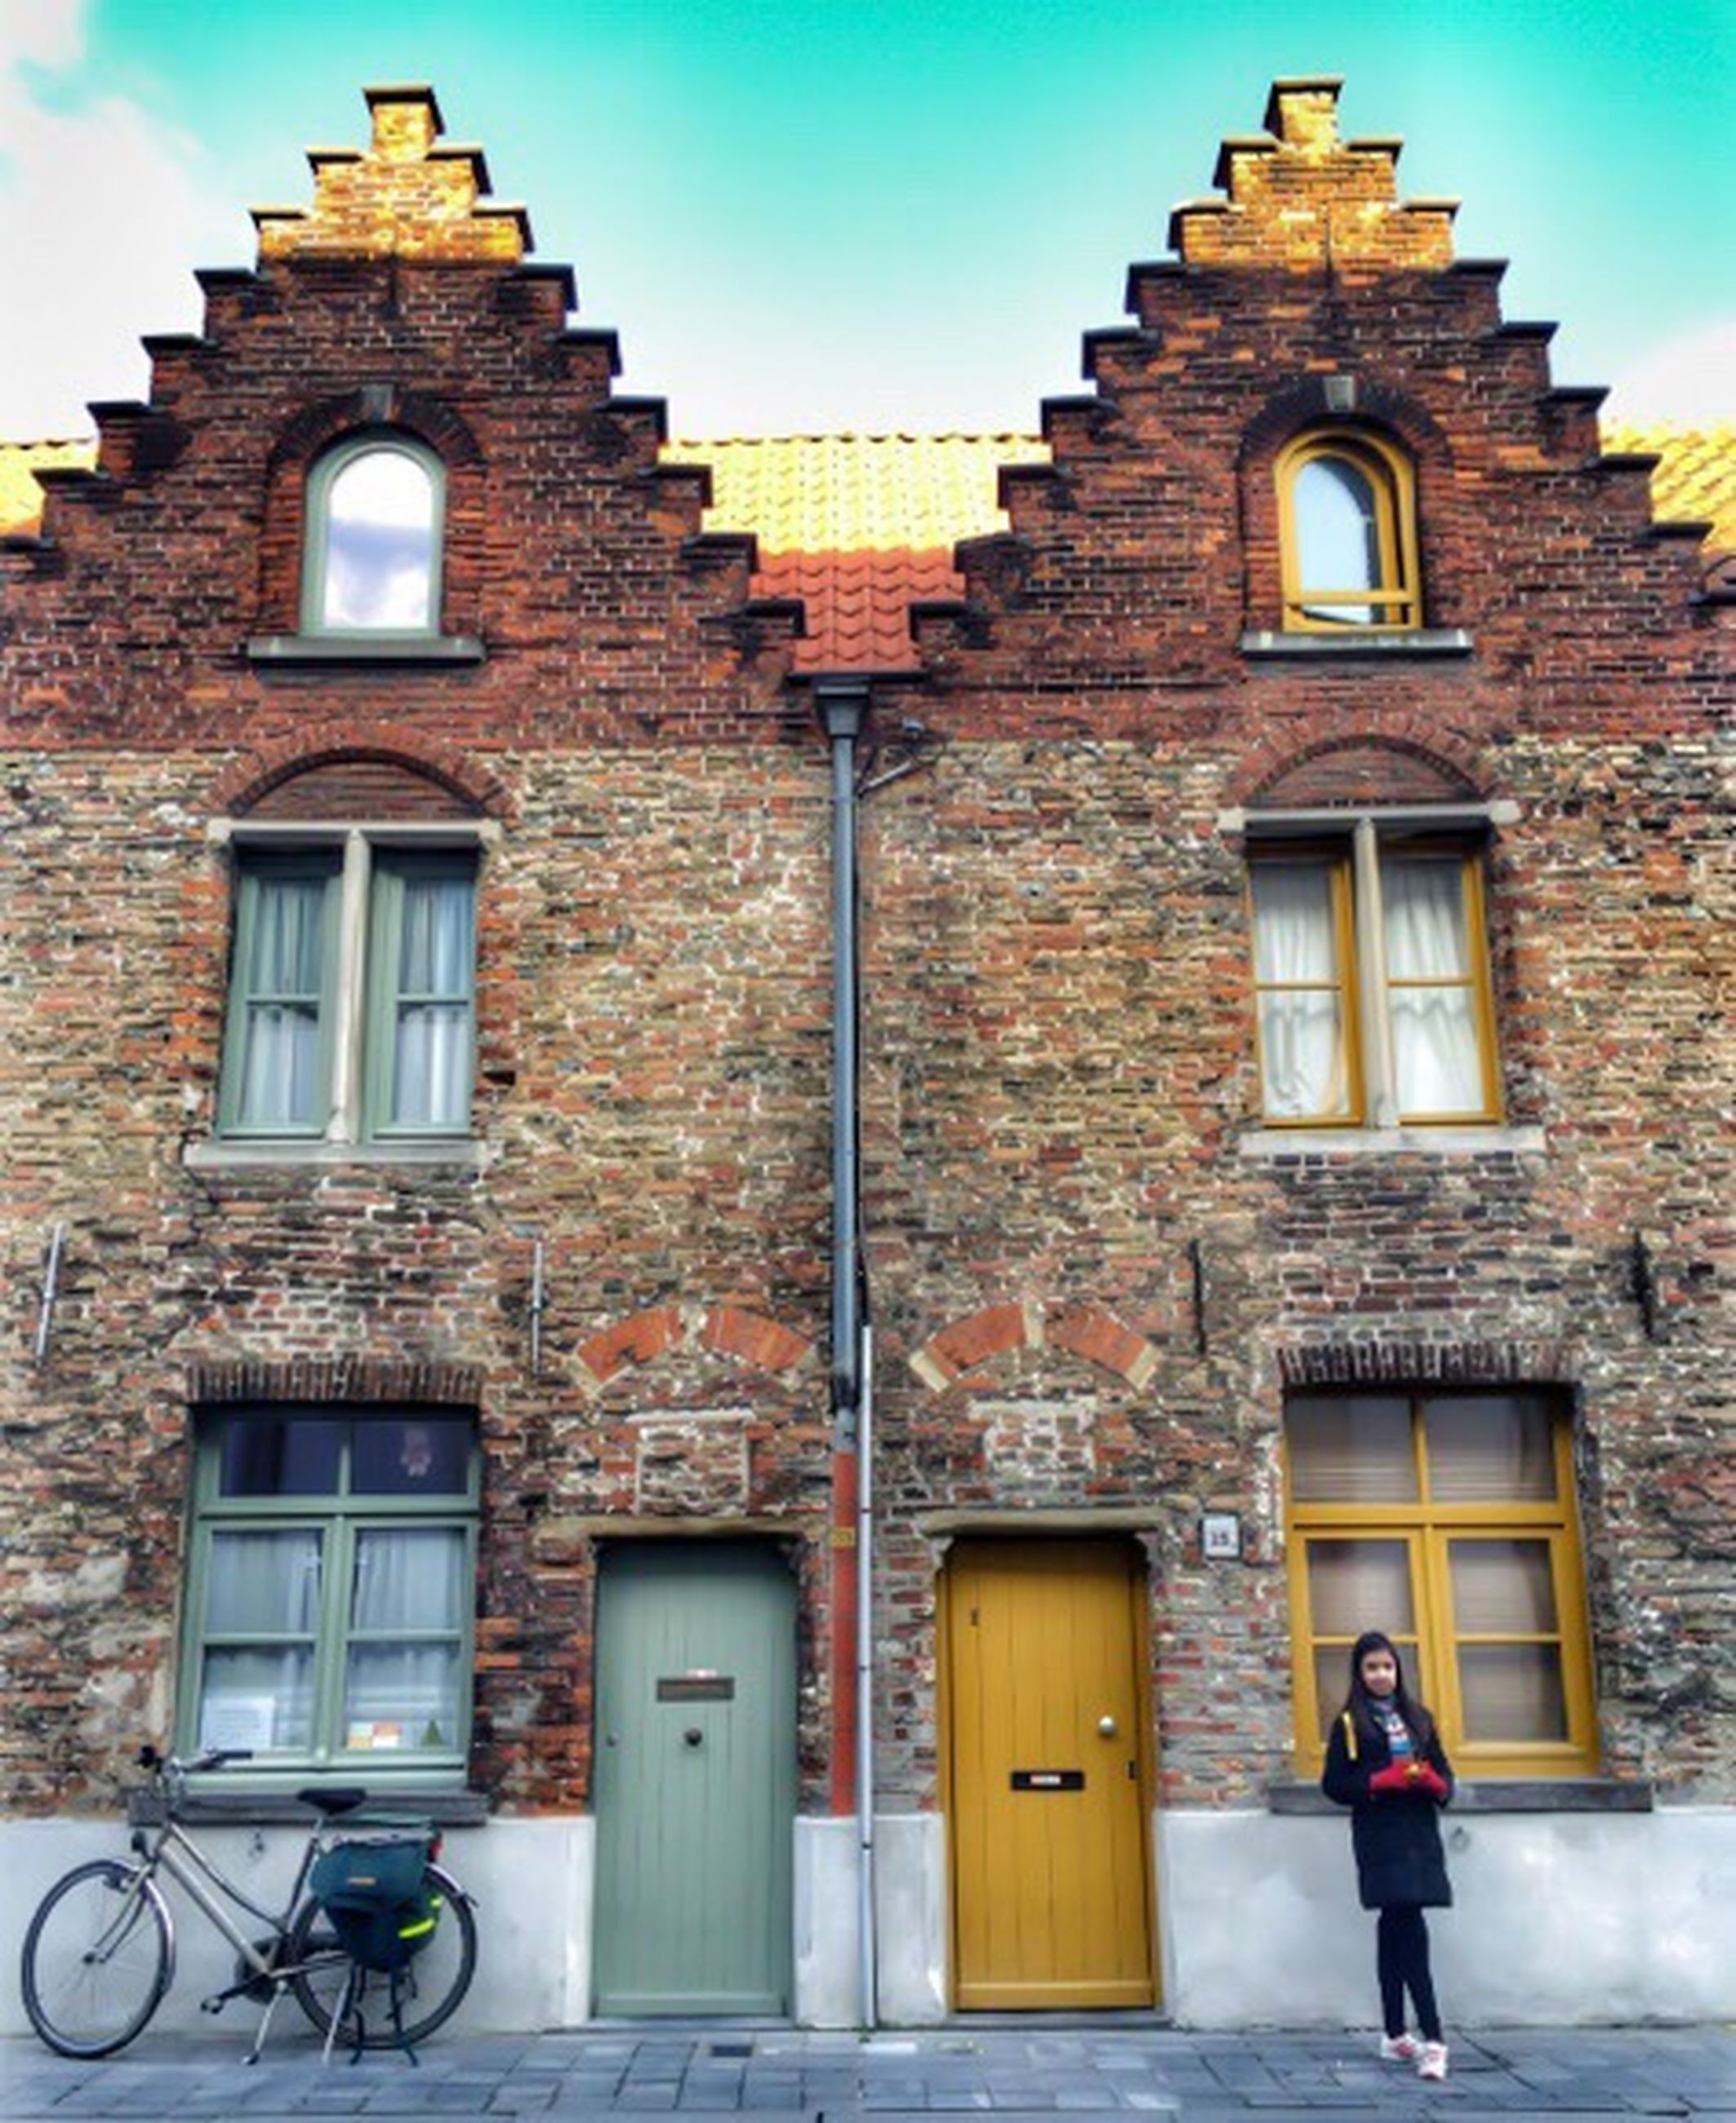 building exterior, architecture, built structure, window, arch, facade, low angle view, walking, lifestyles, men, house, sky, day, outdoors, clear sky, full length, residential structure, person